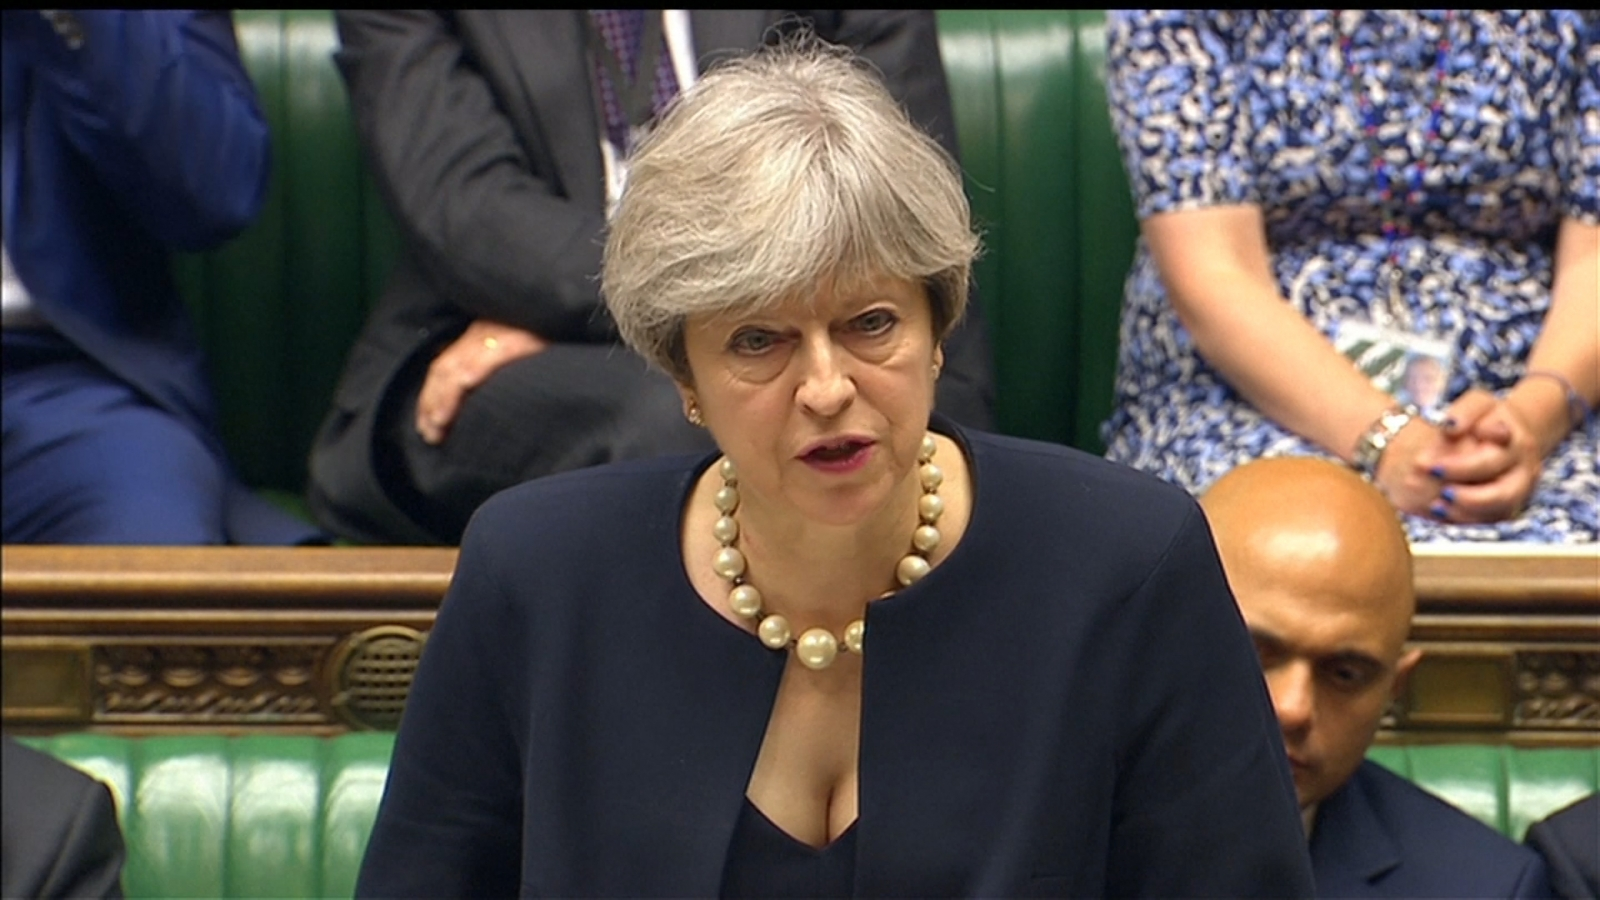 Theresa May says 'combustible' cladding used on other buildings